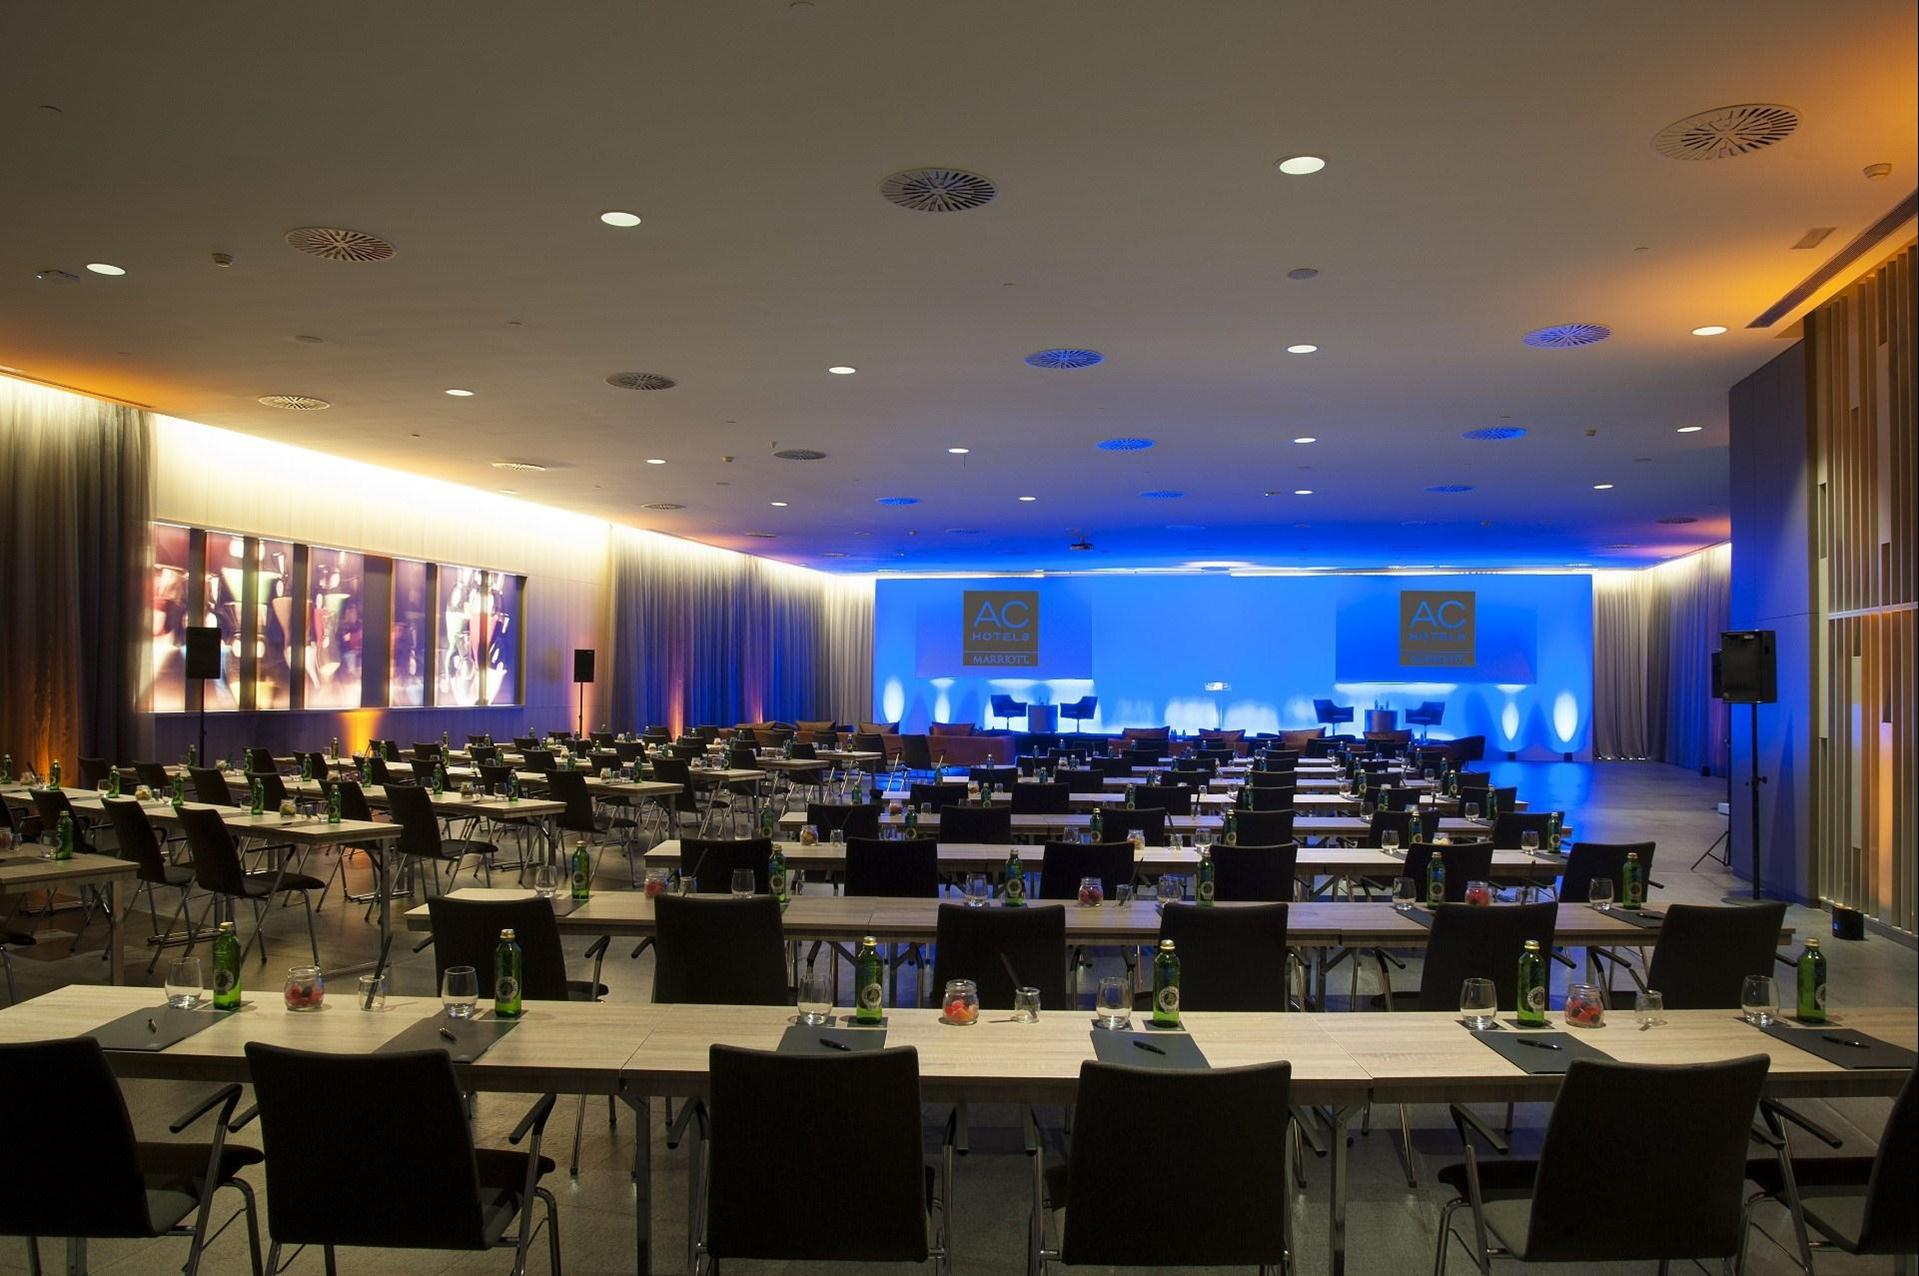 Meetings And Events At Ac Hotel Barcelona Forum Barcelona Es